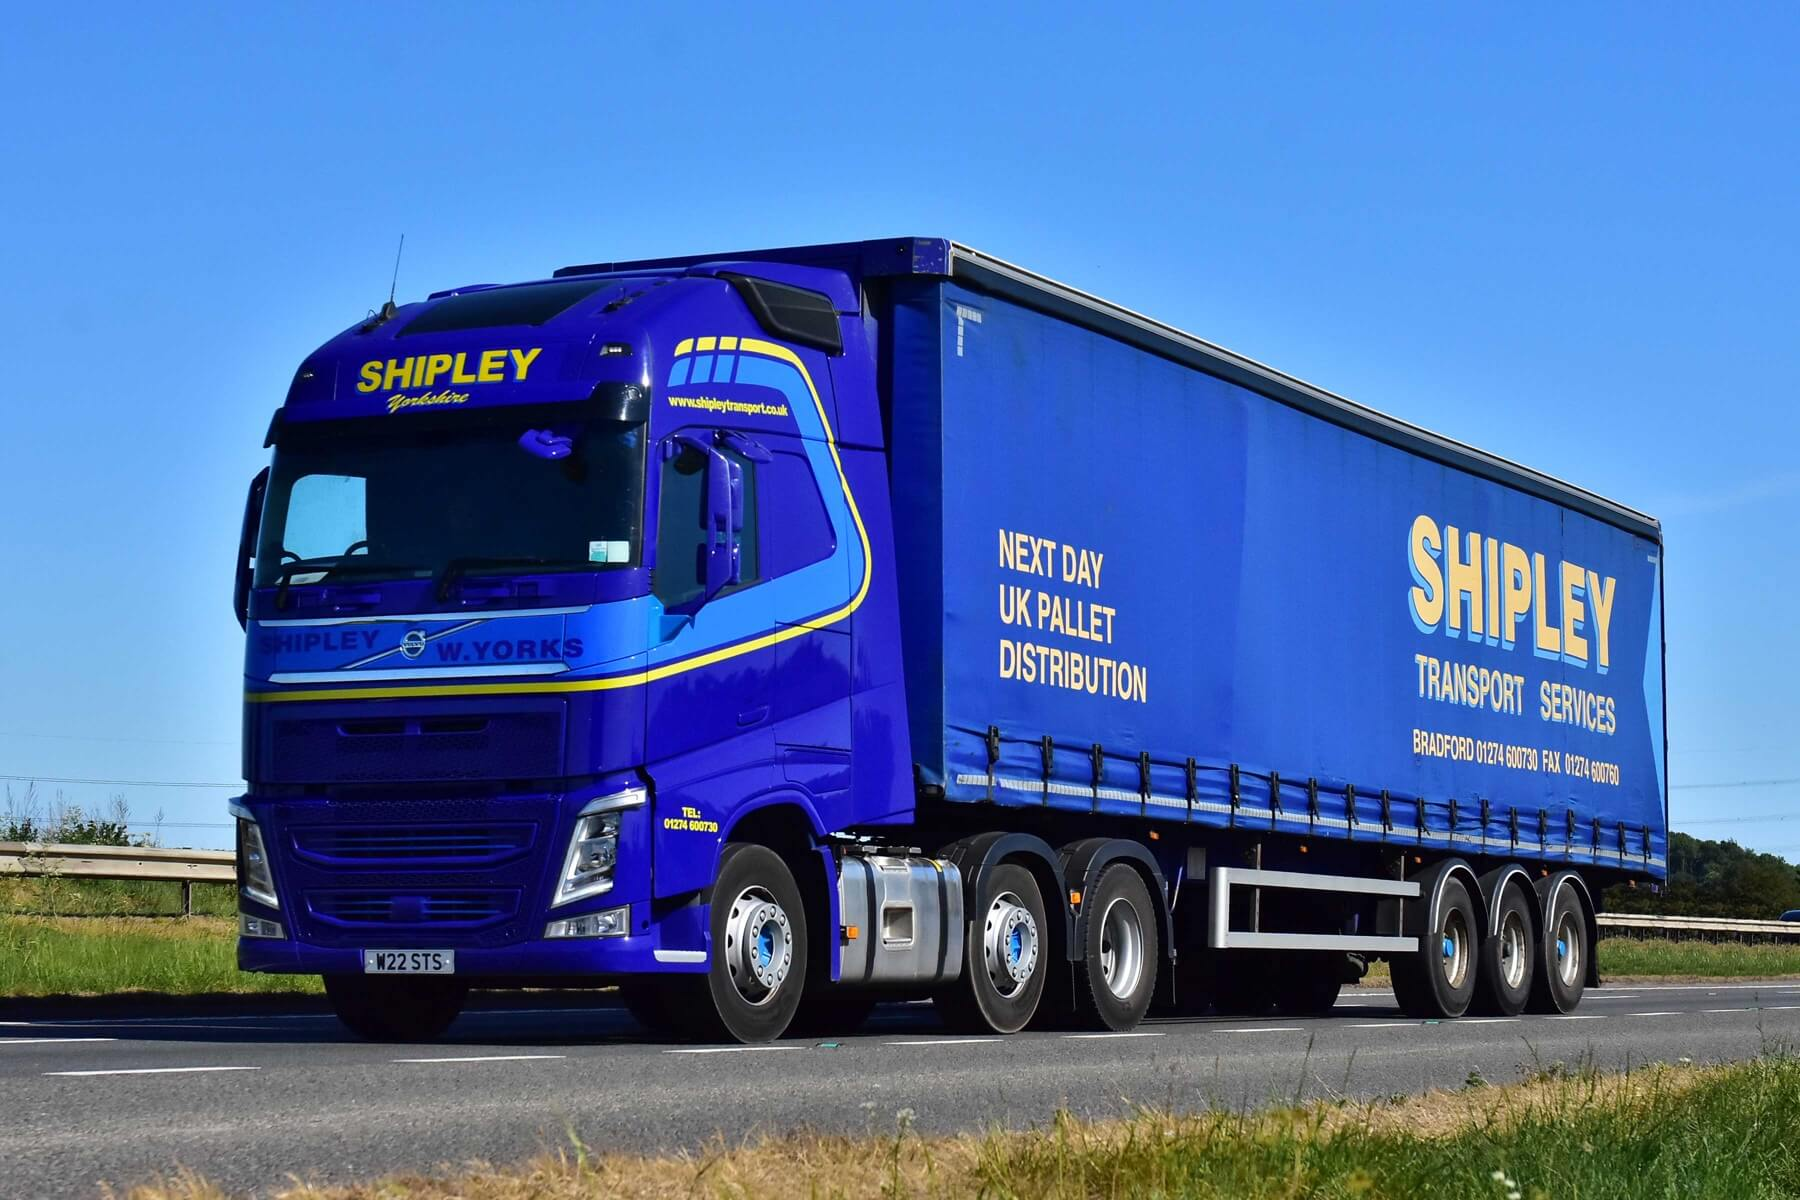 Shipley Transport - Haulage near Leeds, Yorkshire - Delivering nationwide